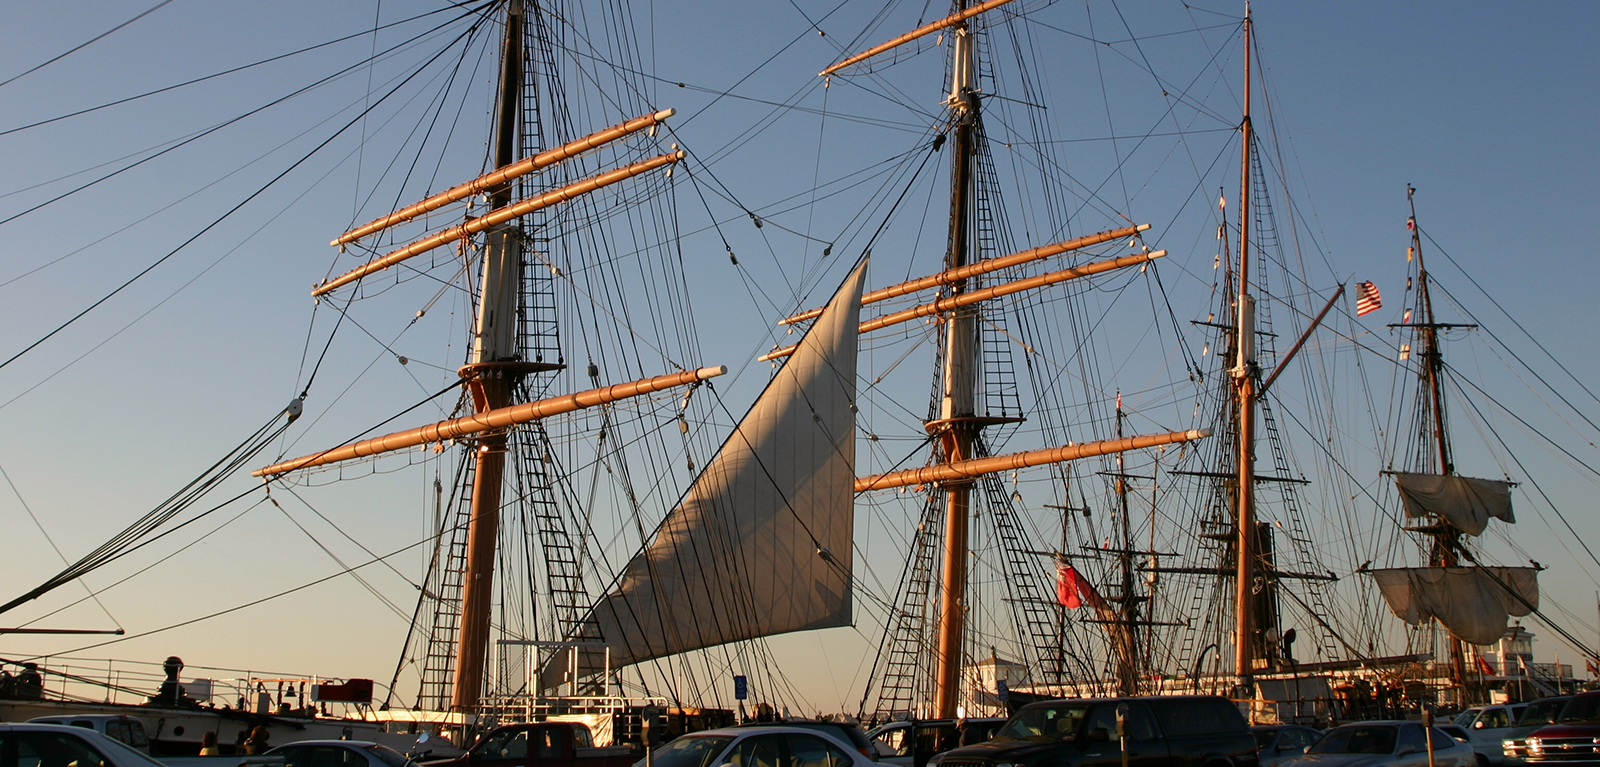 https://www.dutchpoint.org/images/default-source/Homepage-Banners/columbus-day-sail-boat.png?sfvrsn=2